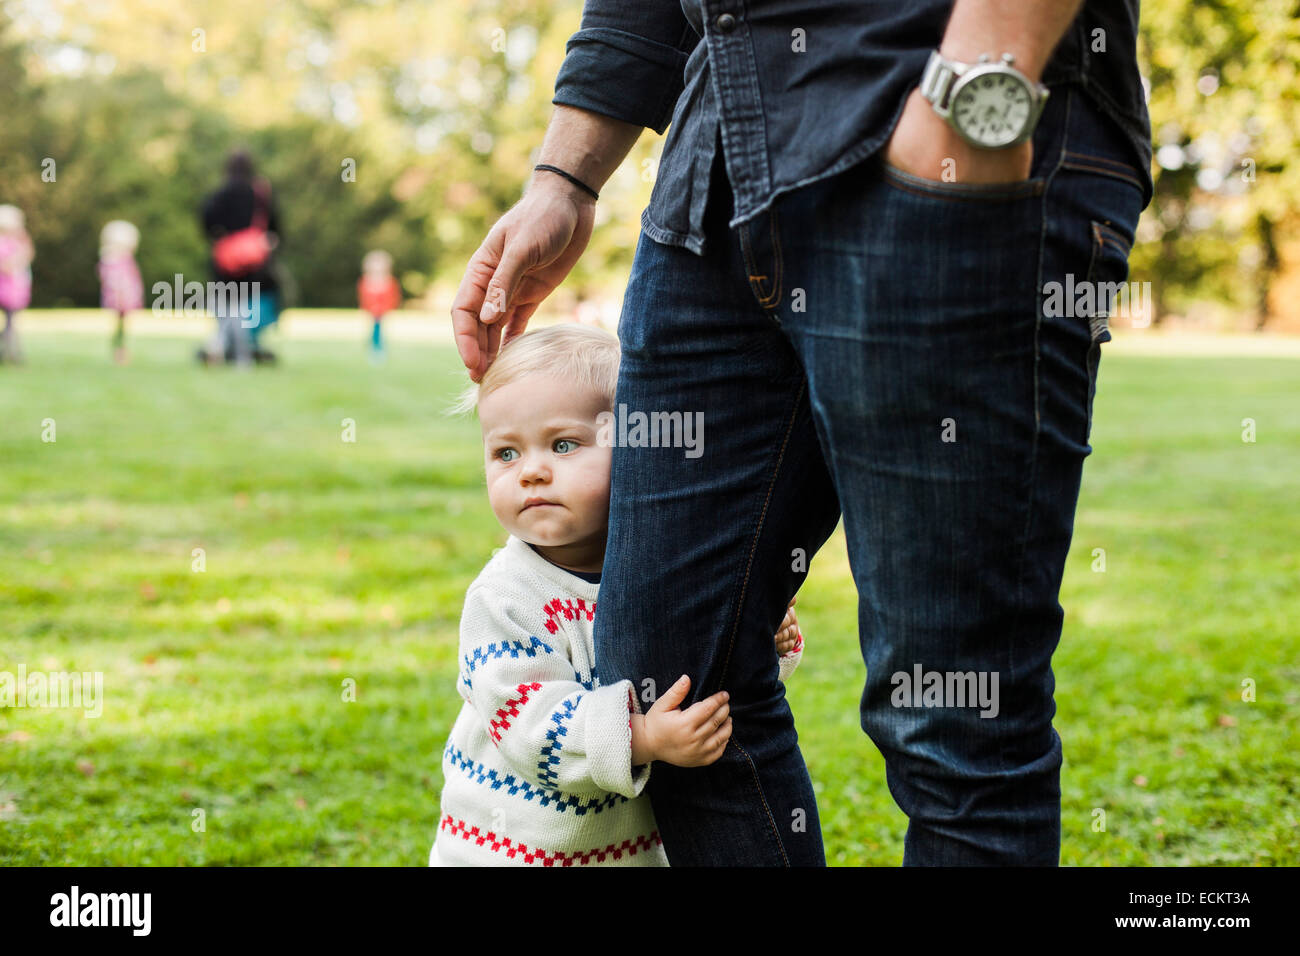 Baby girl holding father's leg in park - Stock Image